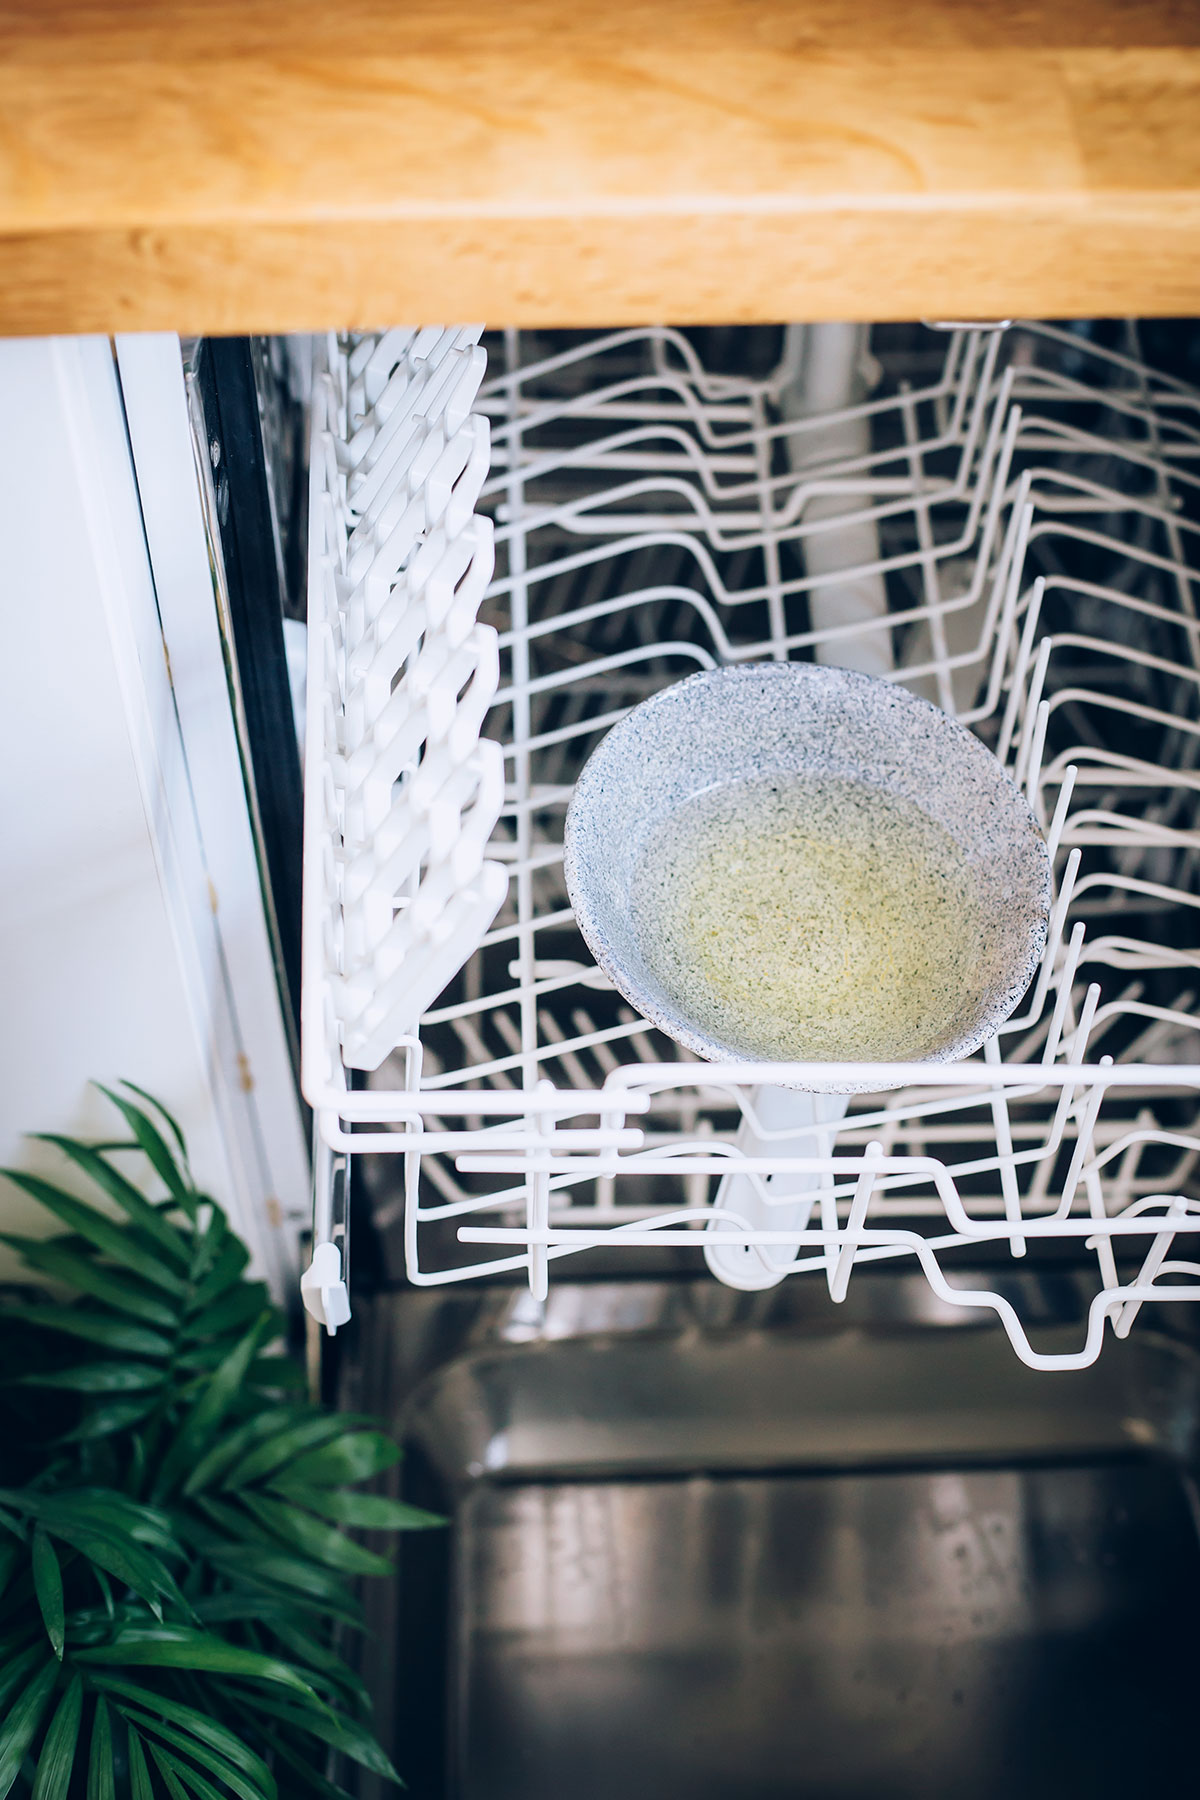 How To Clean The Dishwasher With Vinegar Baking Soda Hello Nest